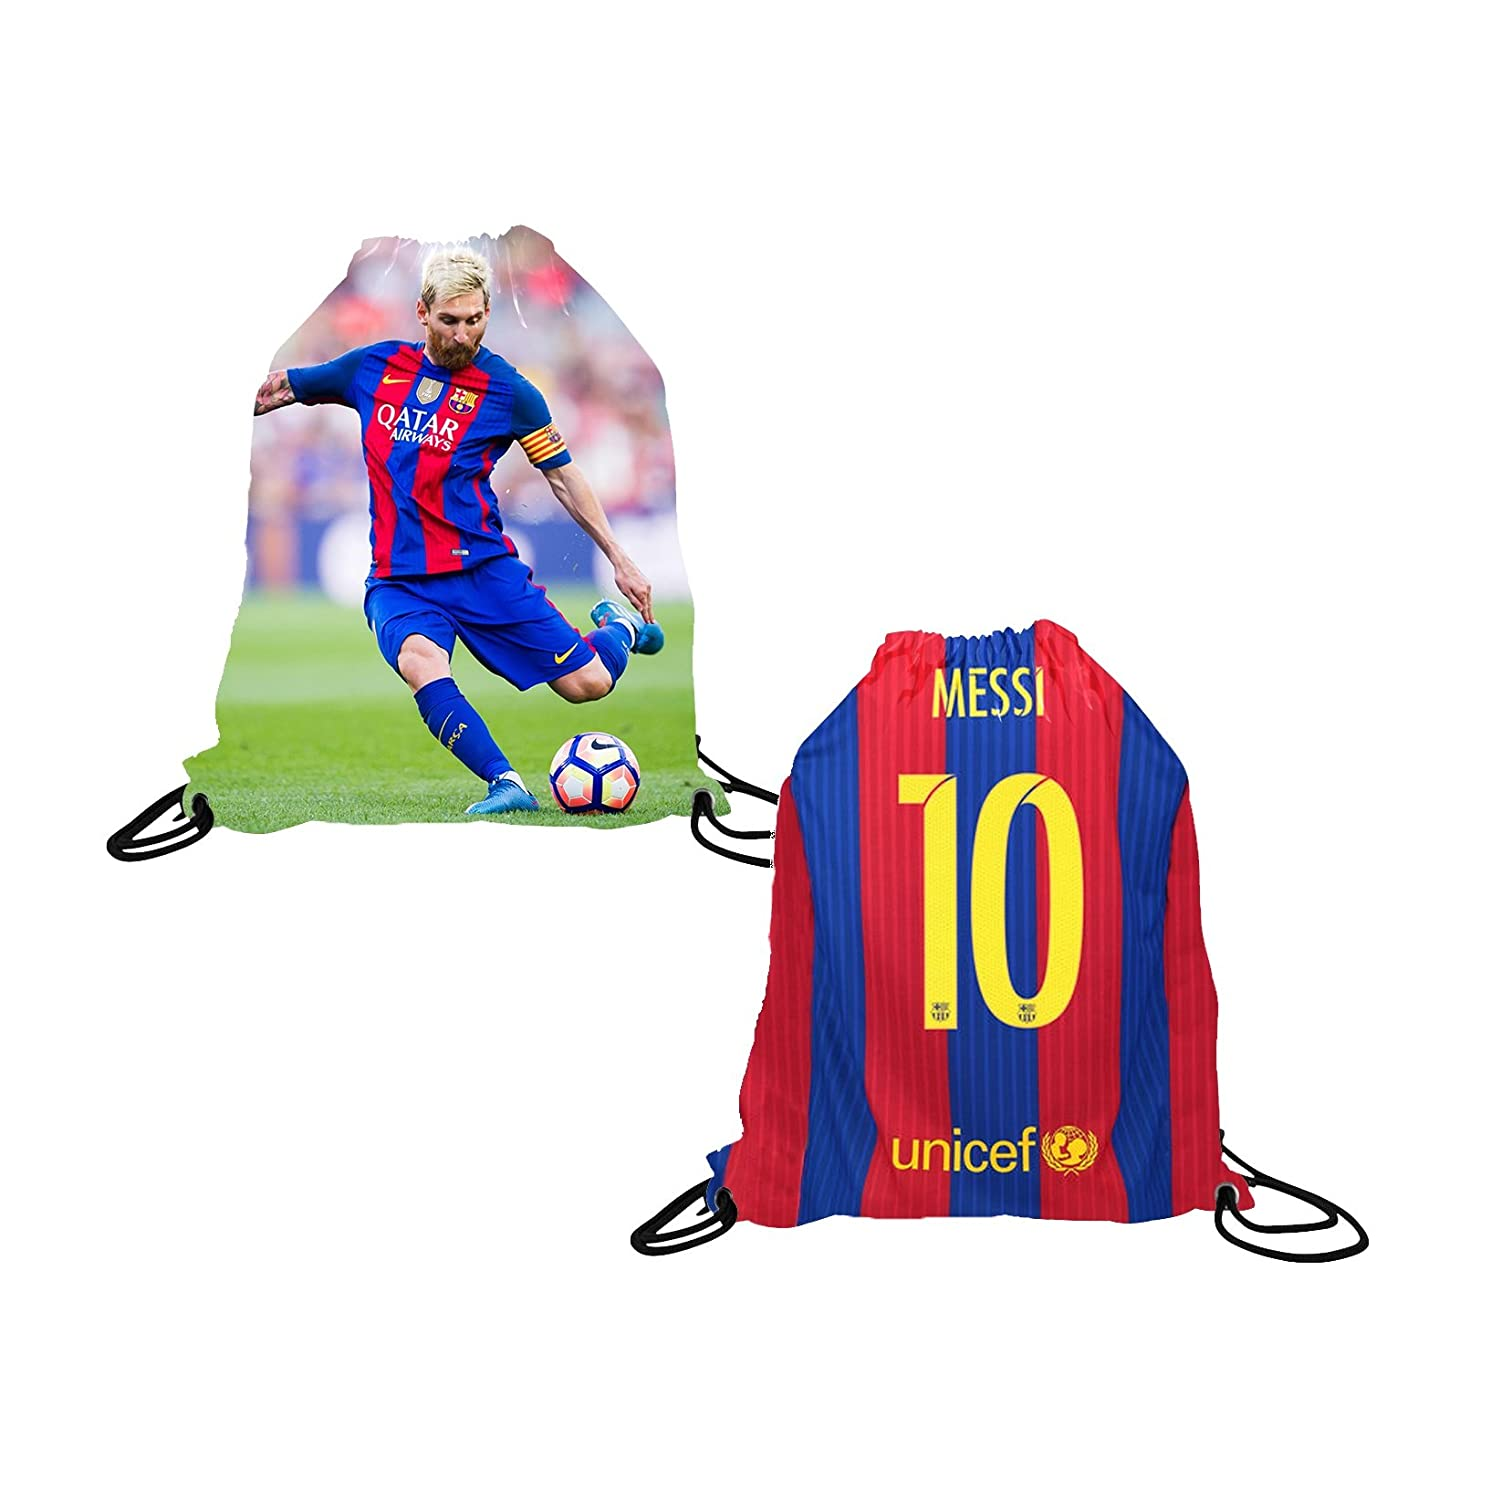 Messi Jersey Style T-shirt Kids Lionel Messi Jersey Picture T-shirt Gift Set Youth Sizes ✓ Premium Quality ✓ Lighteight Breathable ✓ Soccer Backpack Gift Packaging